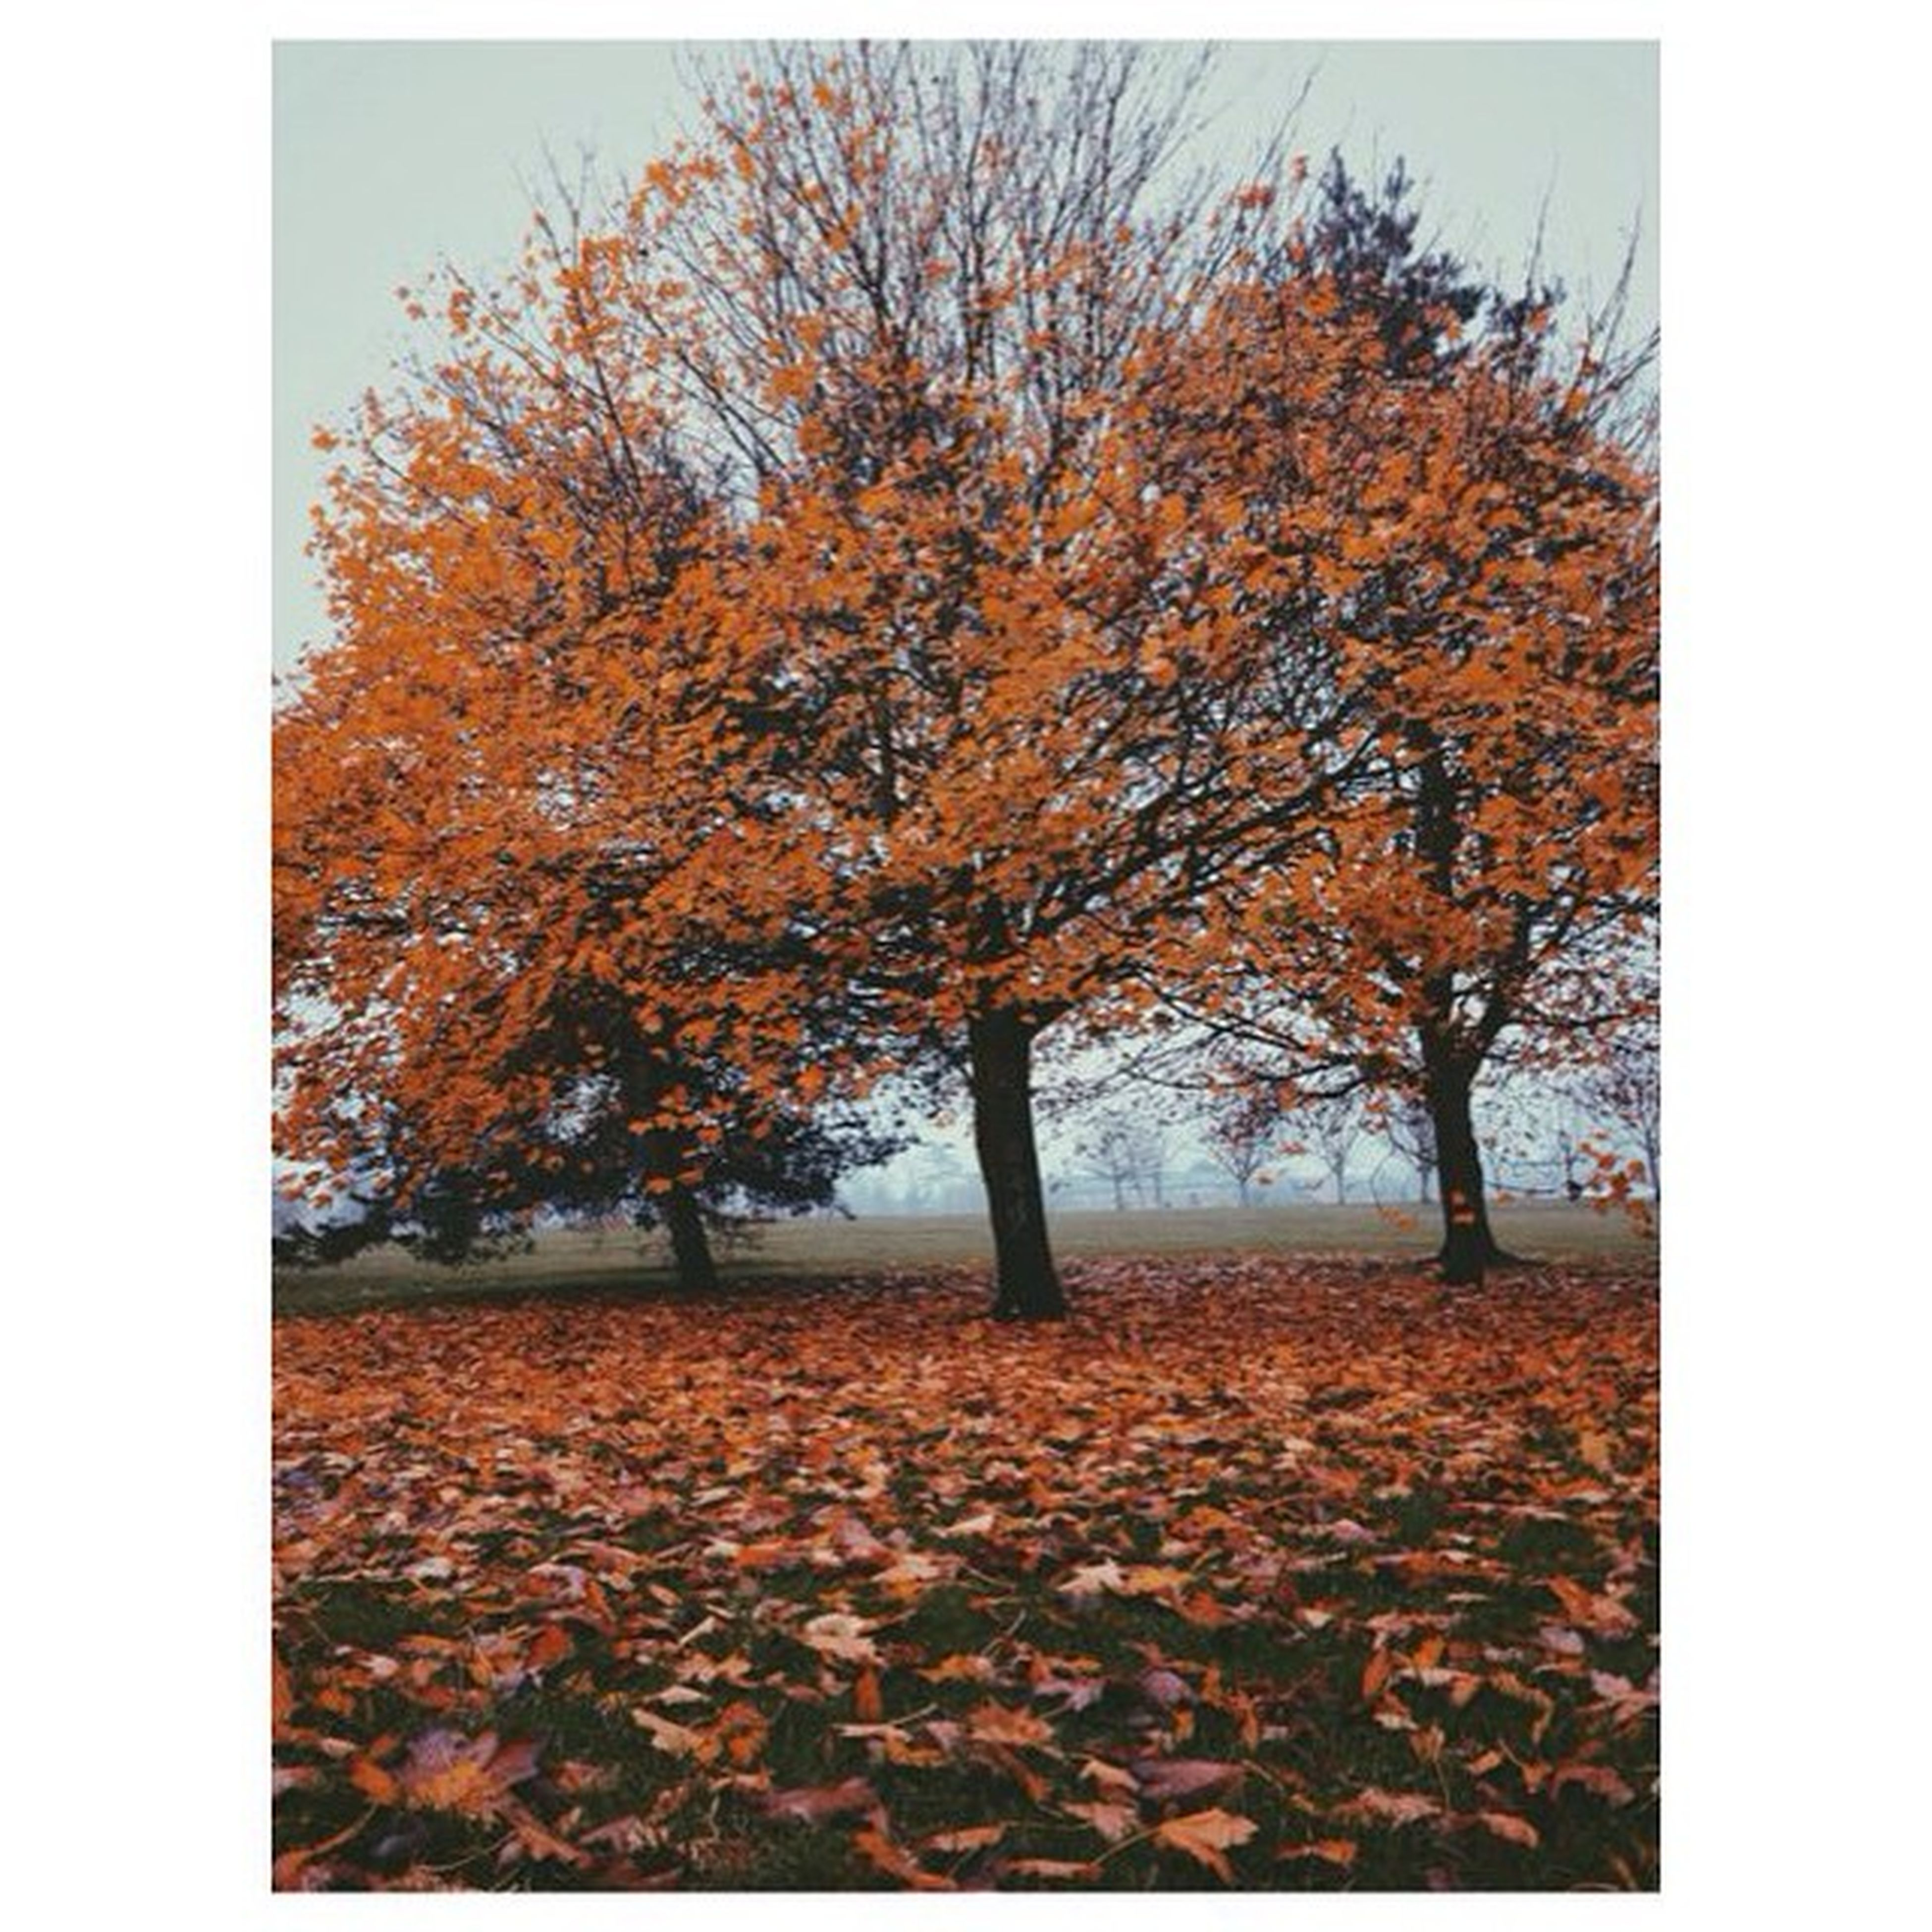 autumn, transfer print, change, season, tree, auto post production filter, leaf, tranquility, orange color, nature, beauty in nature, tranquil scene, field, fallen, scenics, landscape, branch, leaves, day, clear sky